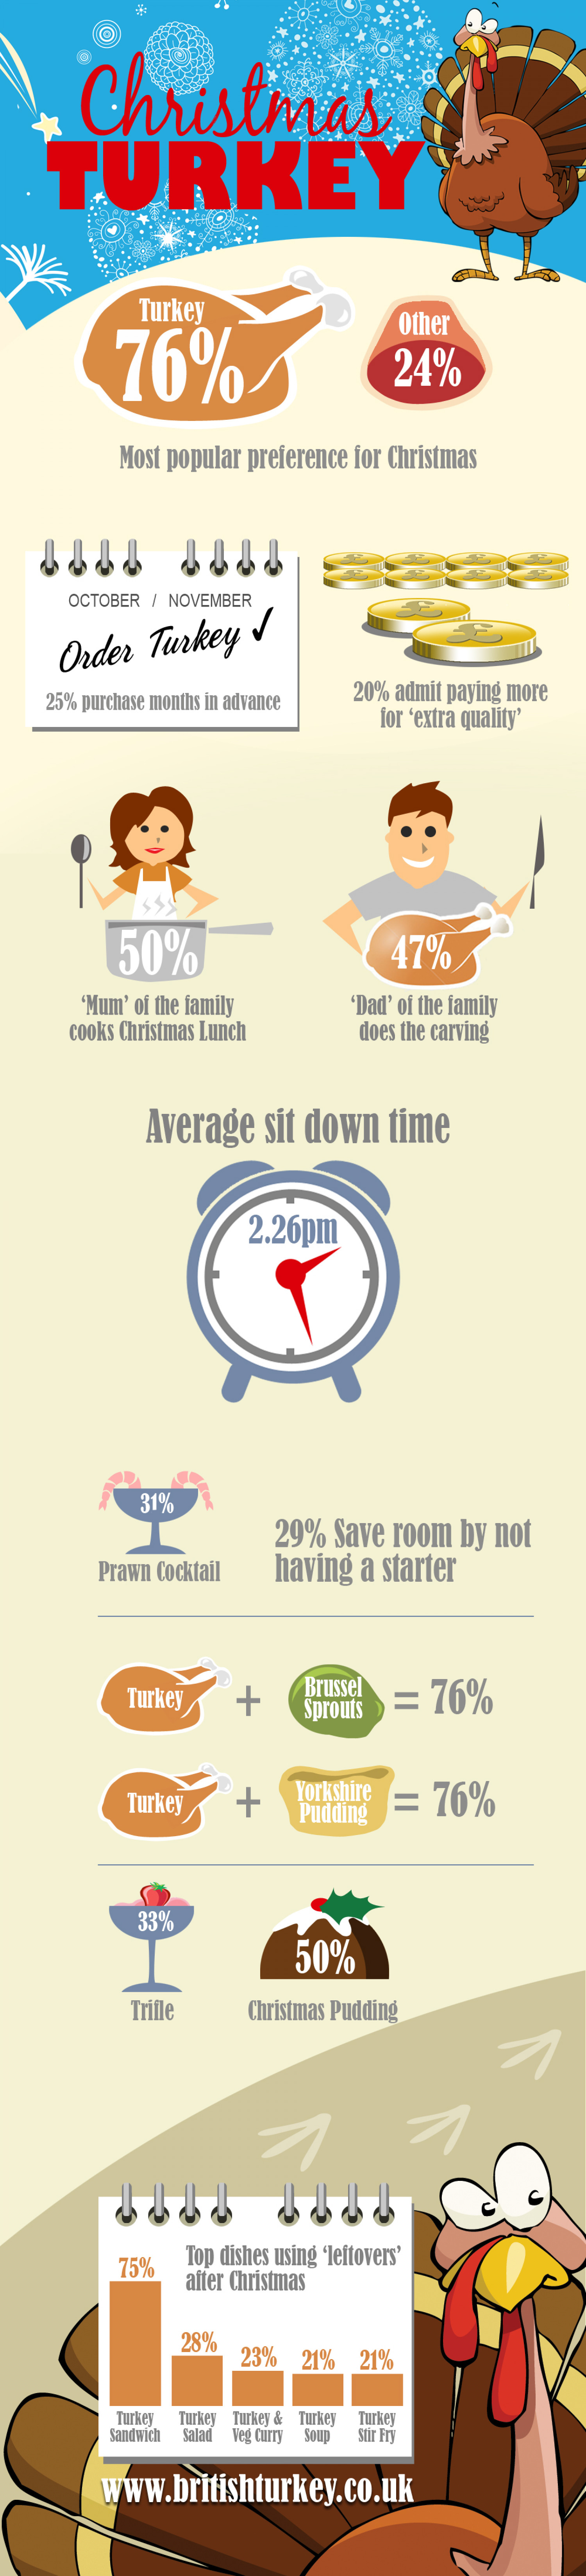 Christmas Turkey Facts Infographic